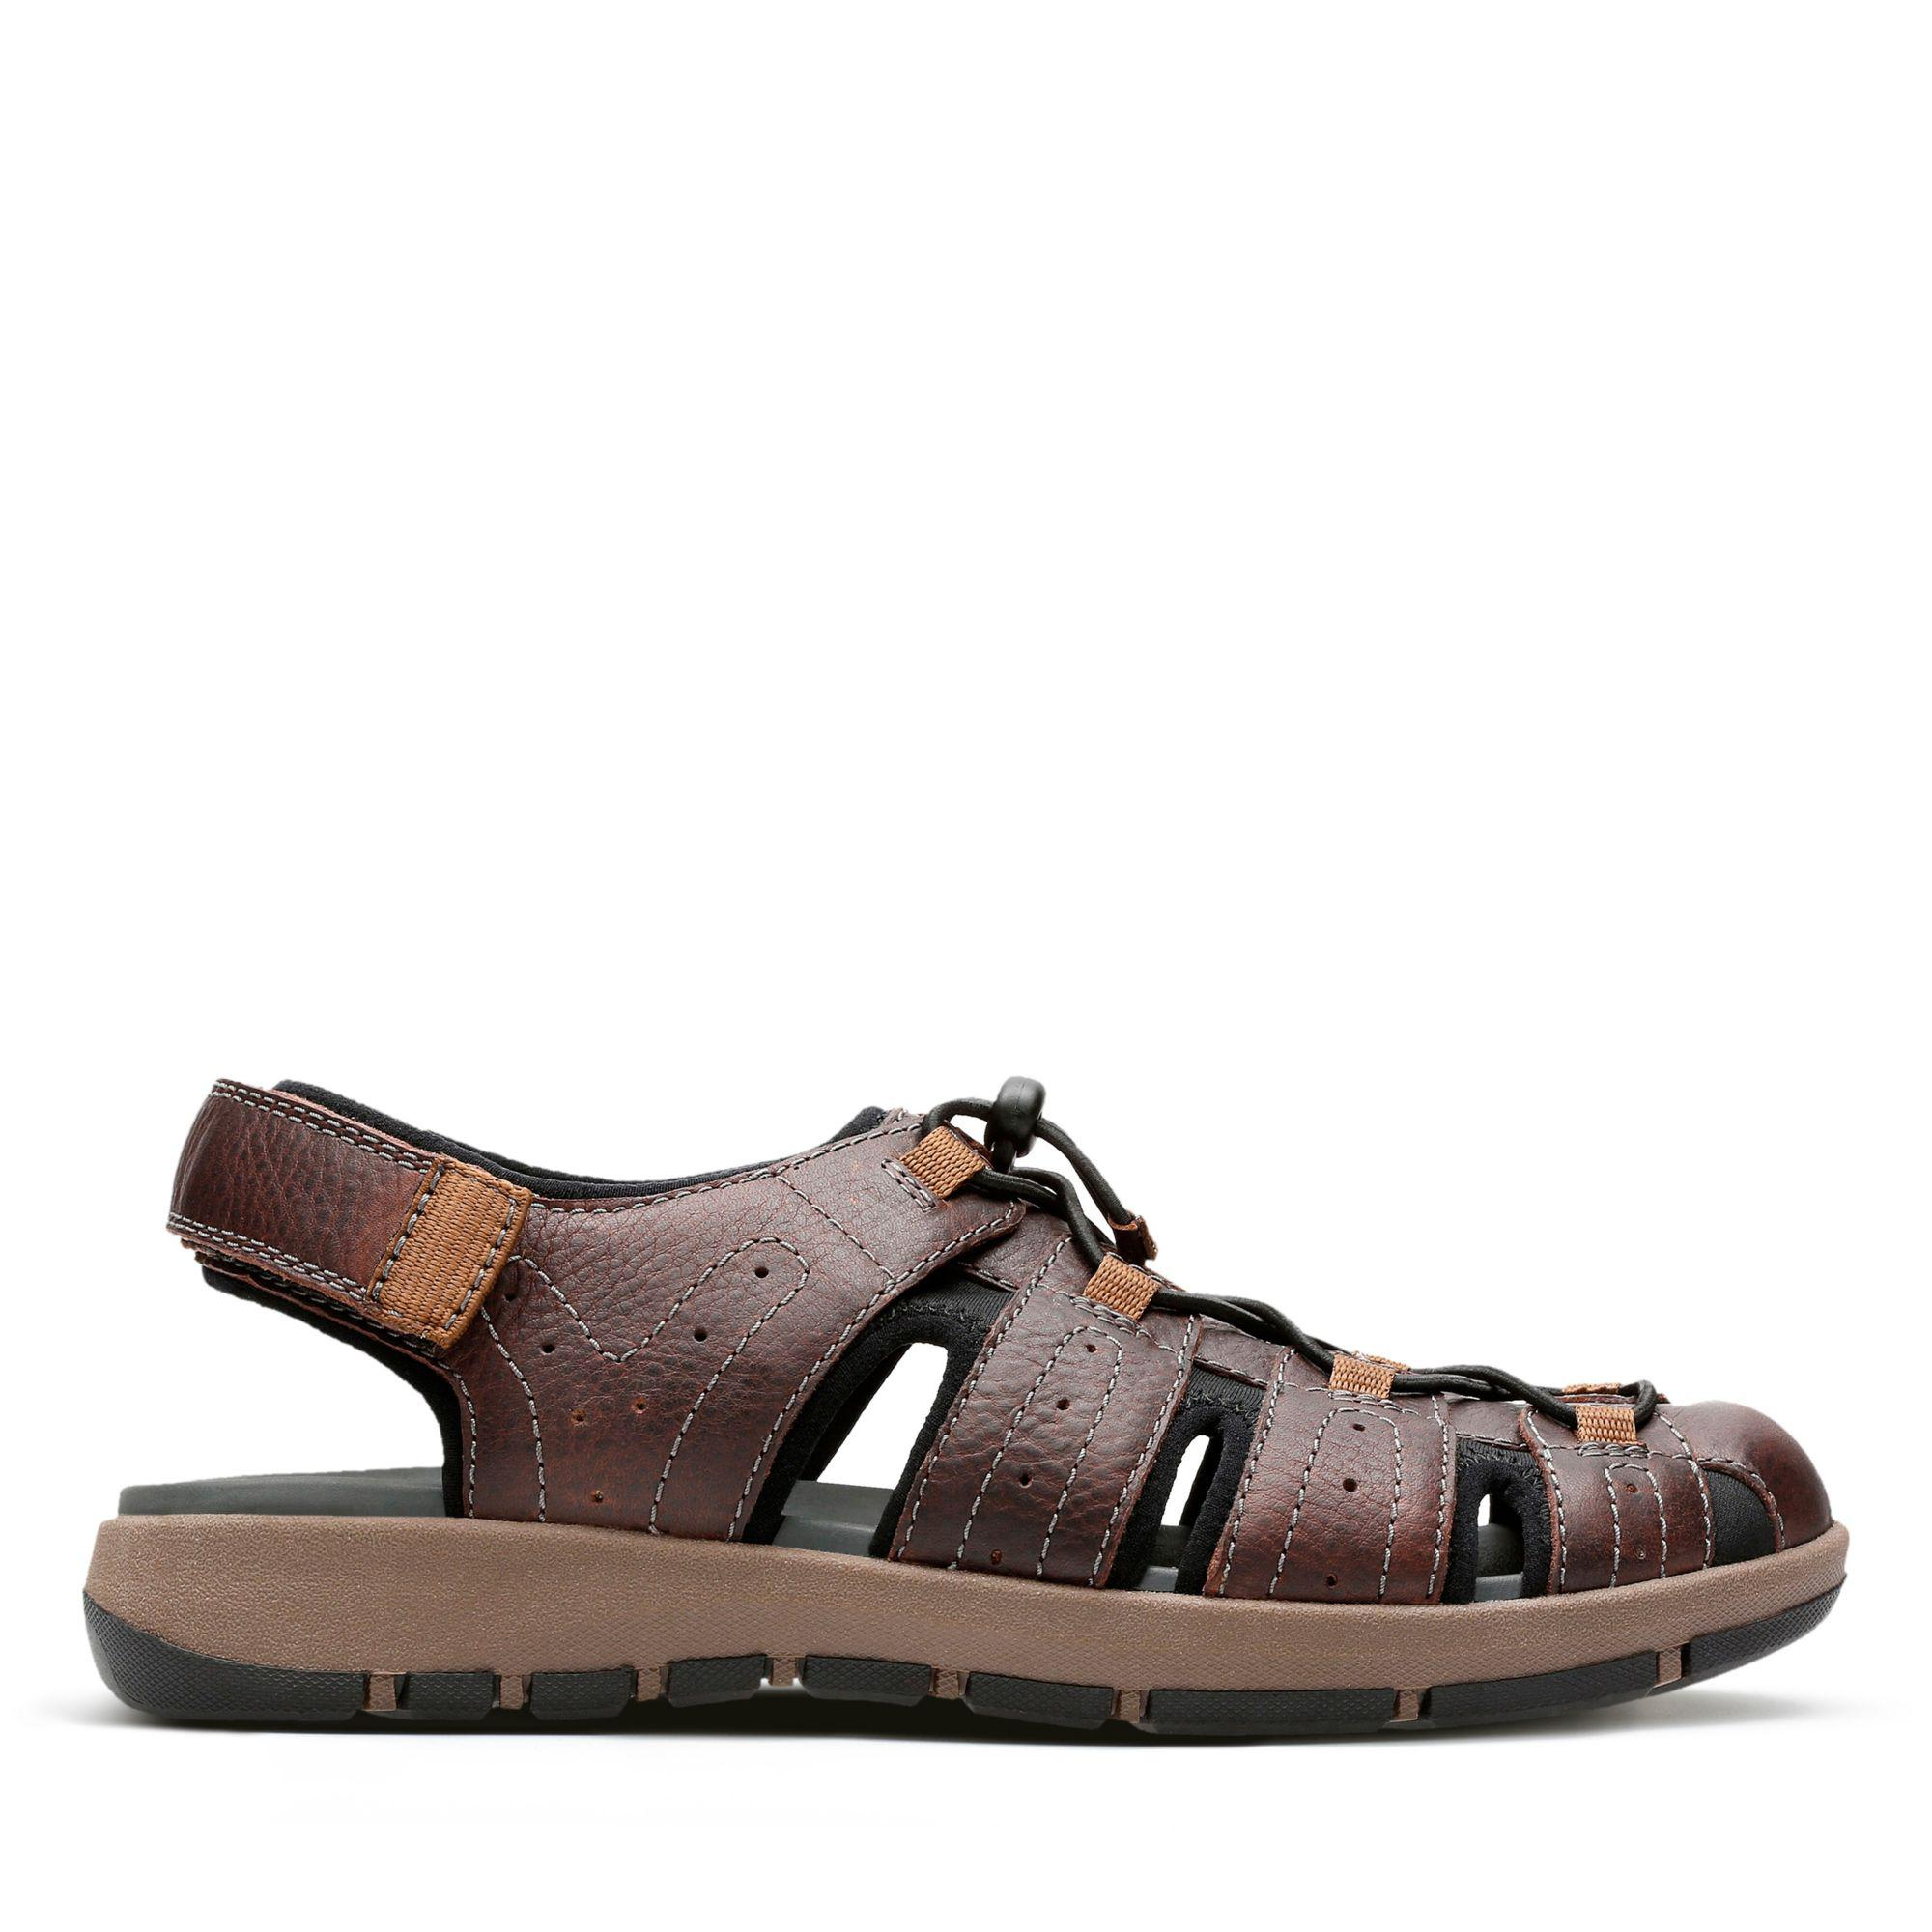 b7bd2c79613 Lyst - Clarks Brixby Cove Fisherman Sandal in Brown for Men - Save 20%